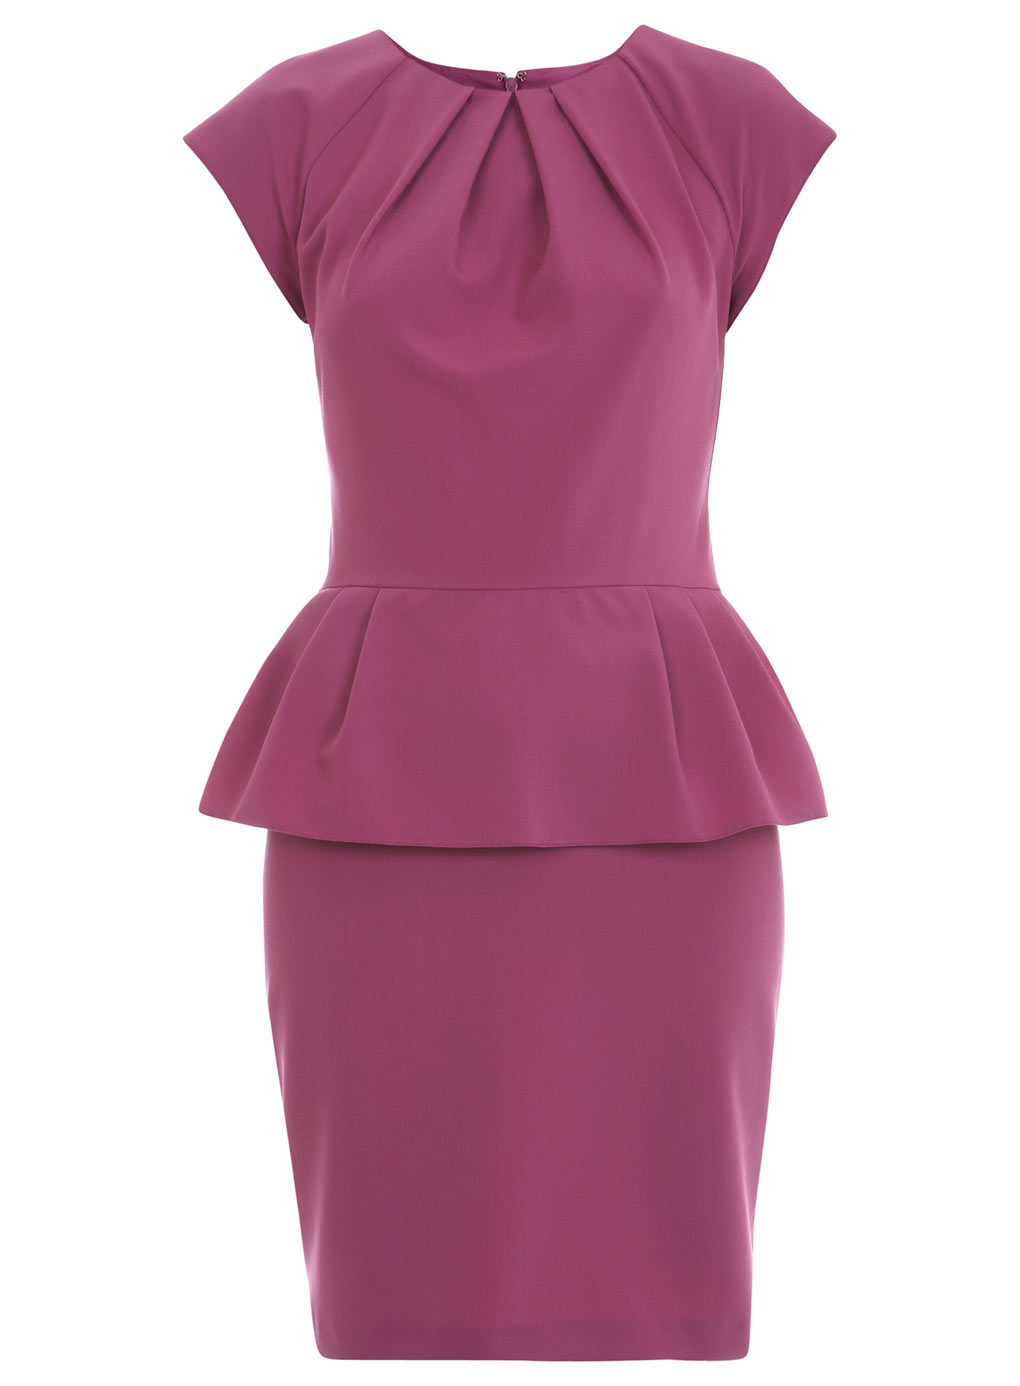 Trend the peplum dress fashion in motion Pink fashion and style pink dress